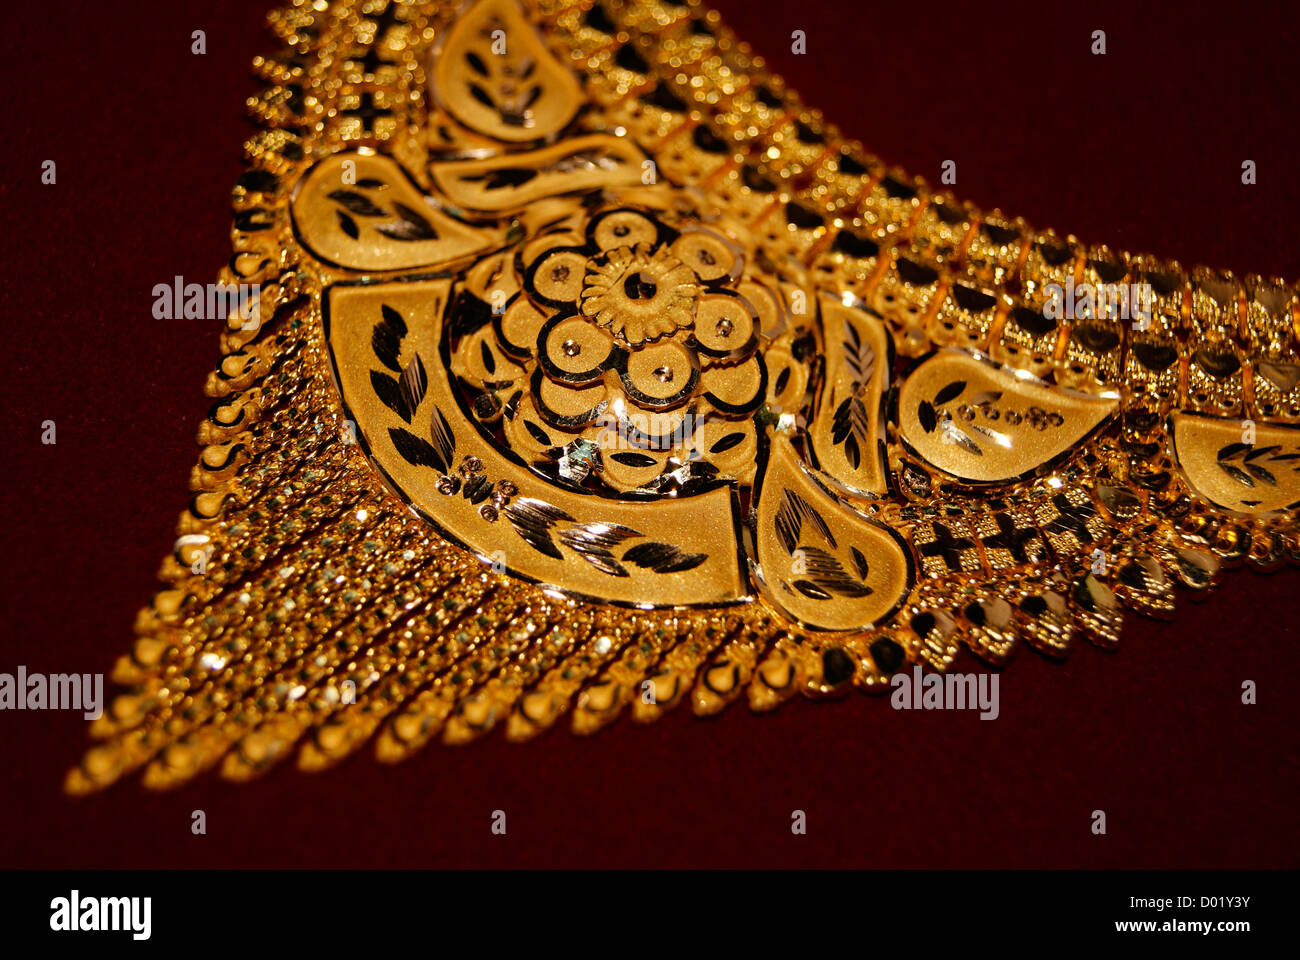 Gold jewellery Ornaments Golden Necklace Closeup View of Jewel Stock